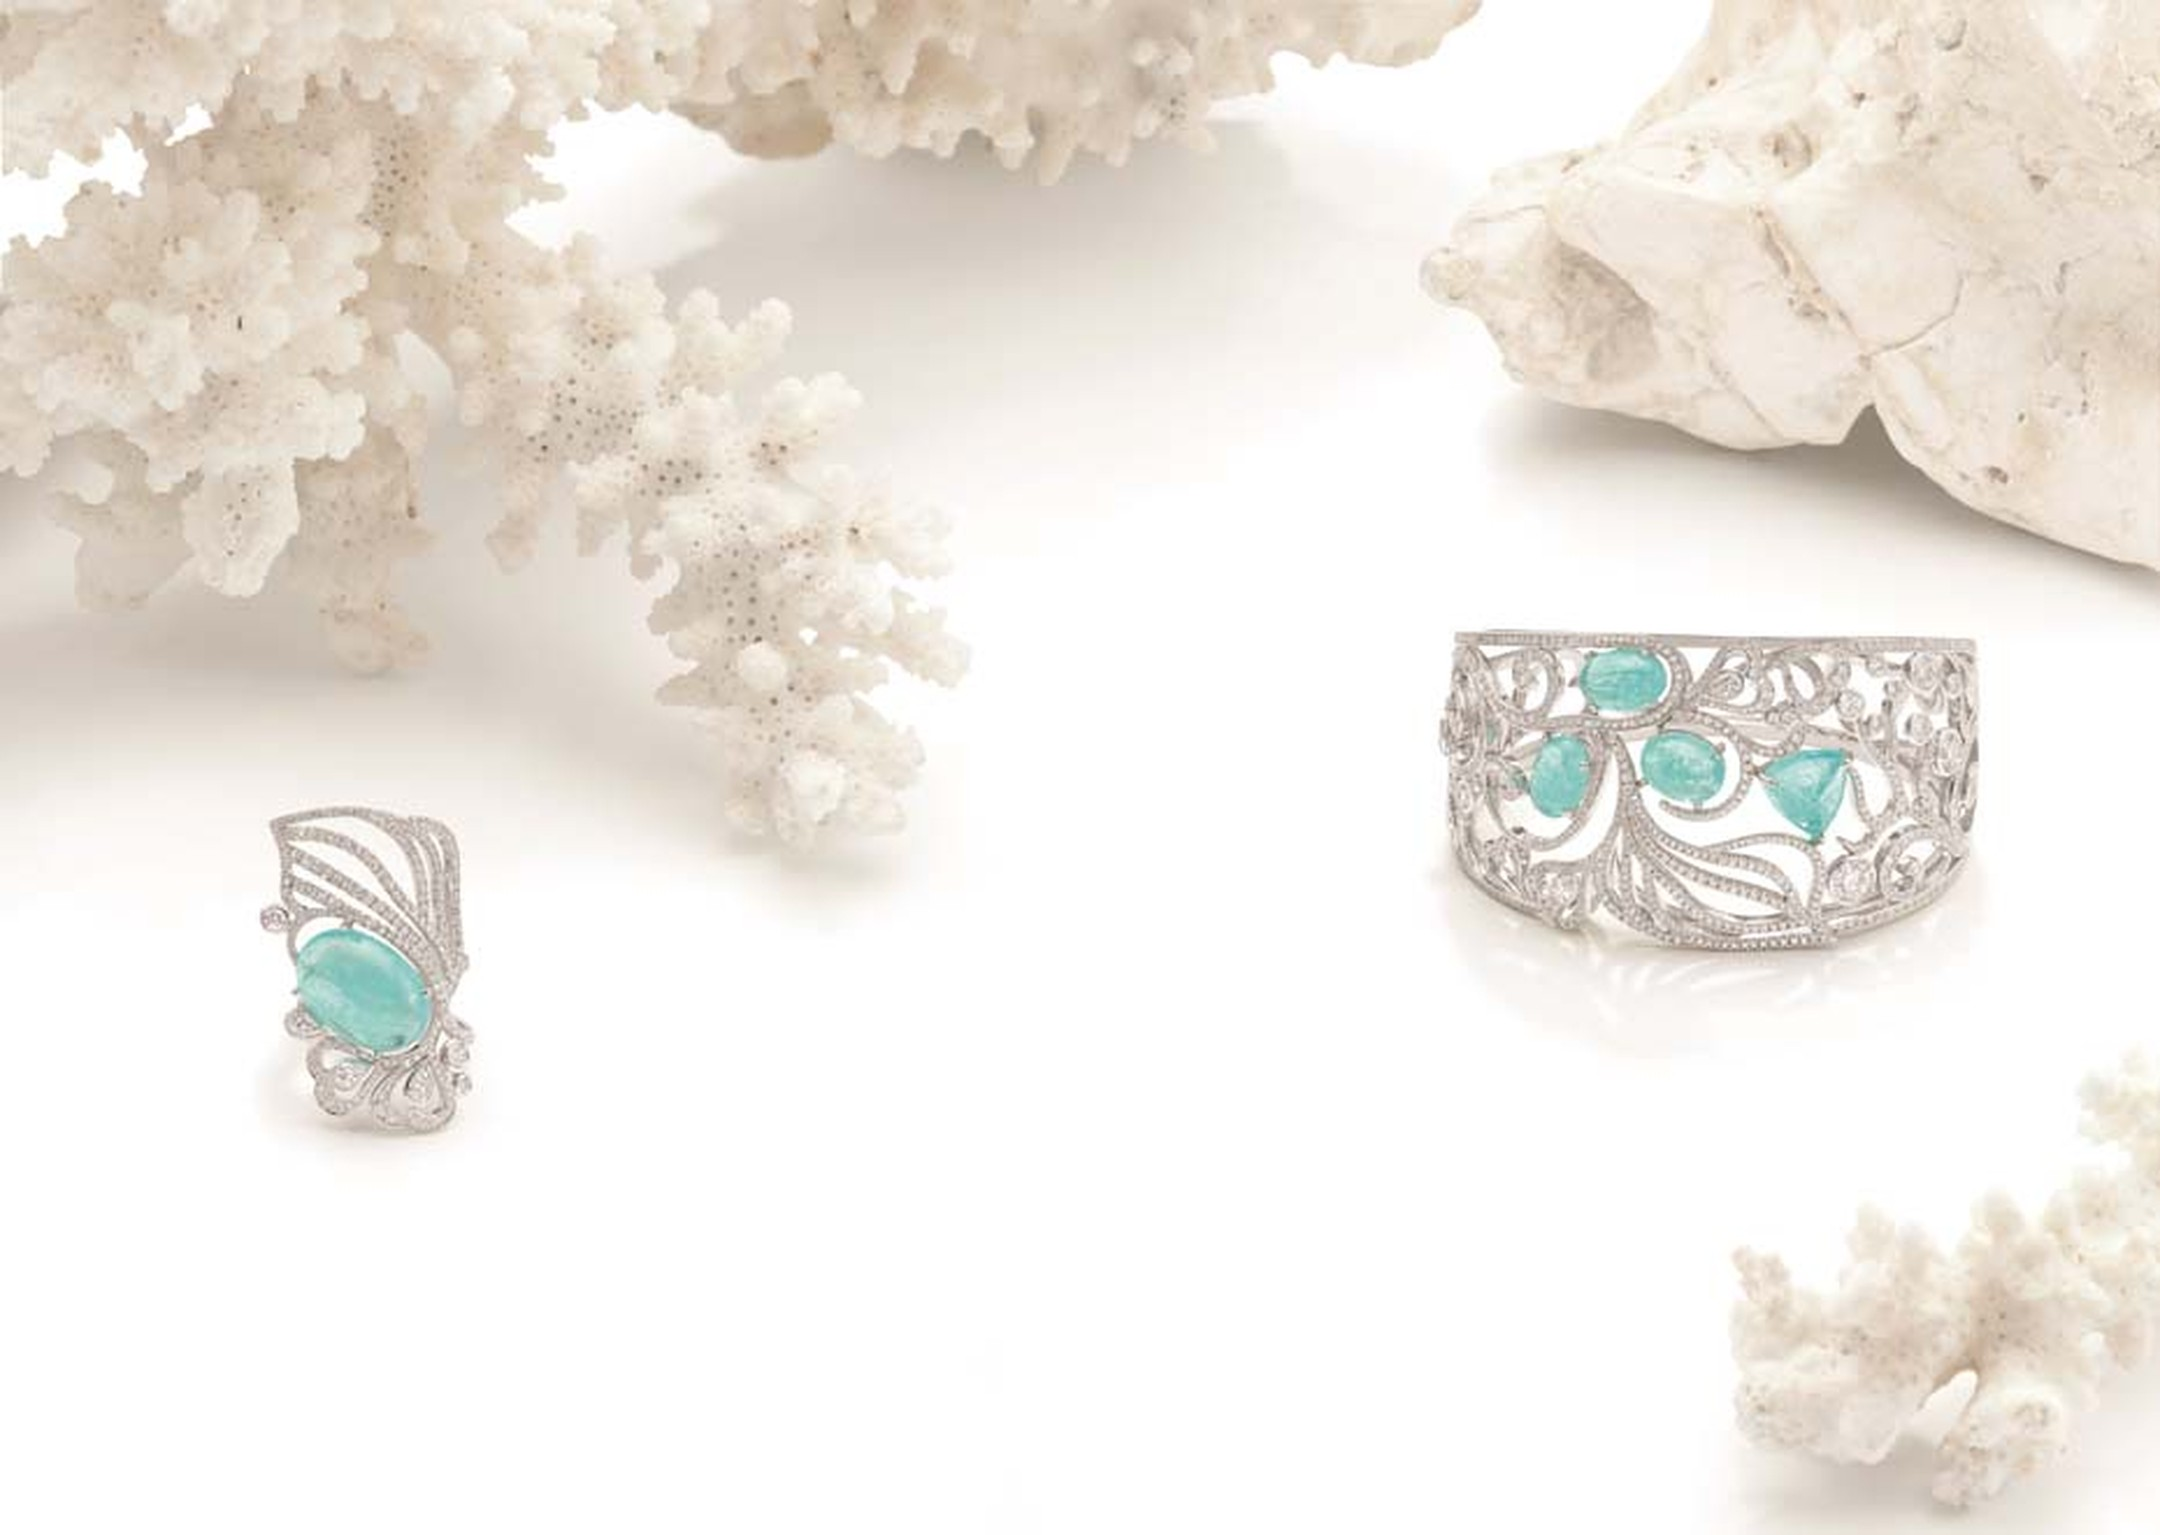 Boodles Atlantic Blue cuff and ring with Paraiba tourmalines and diamonds, from the new 'Ocean of Dreams' collection